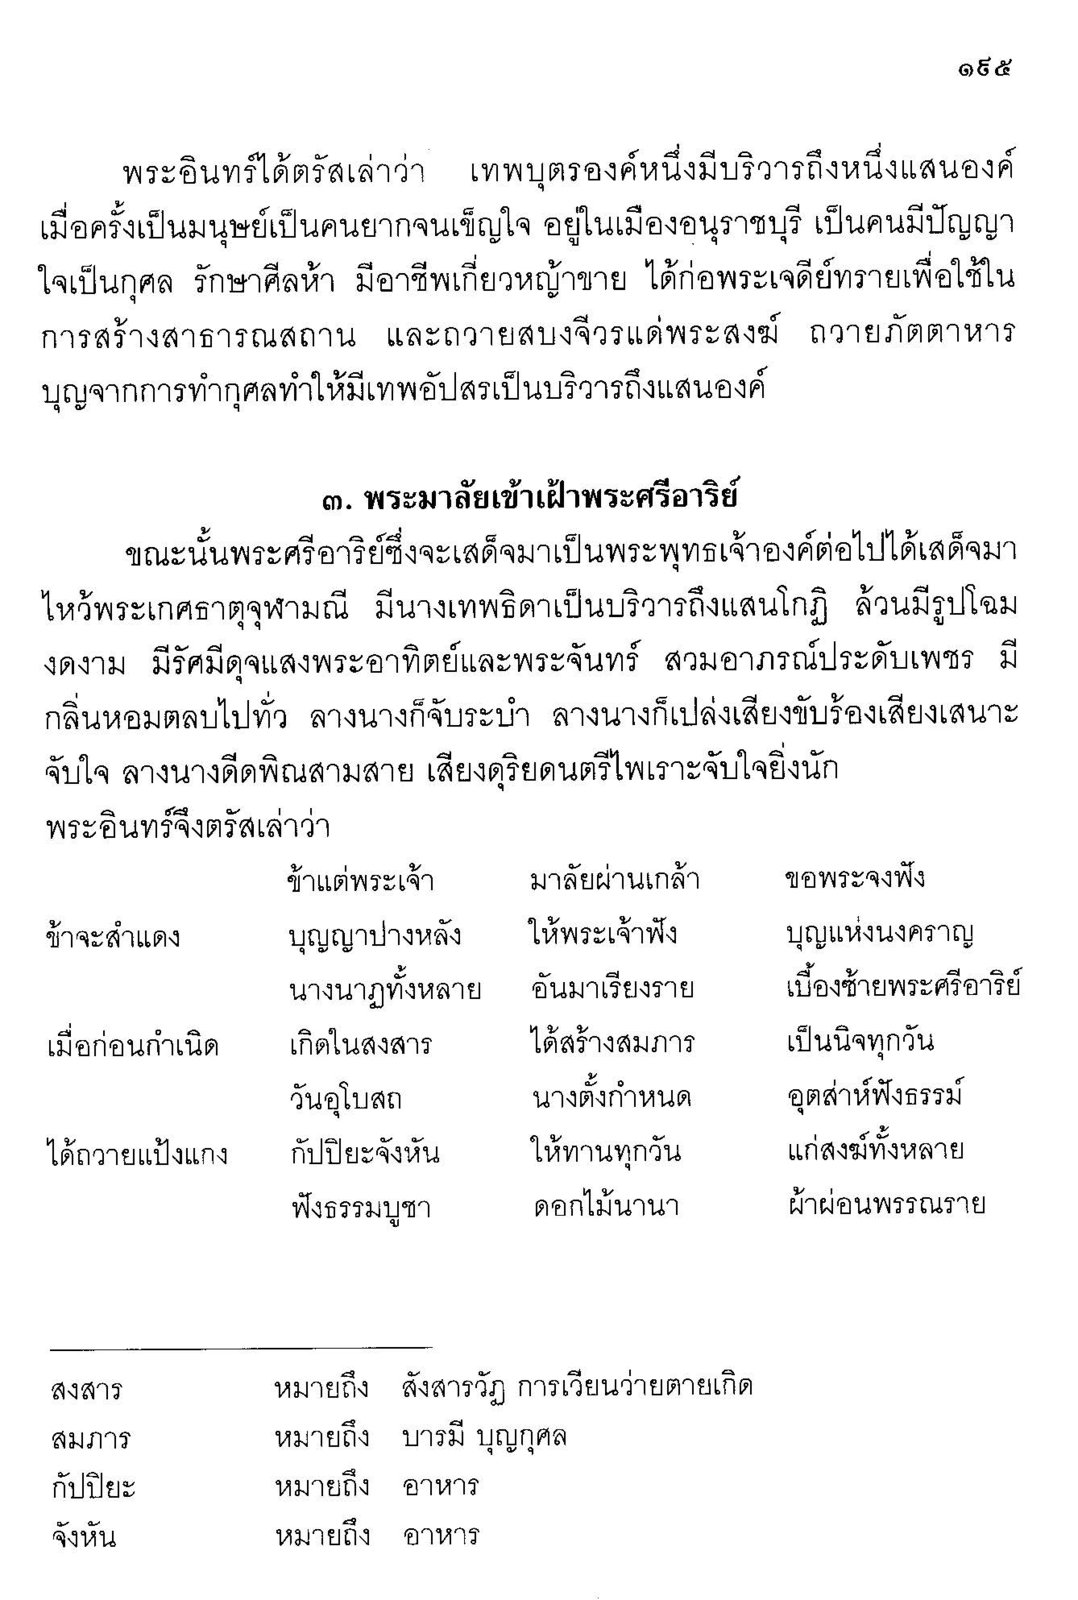 ebook_thai_sect_2_65-990_Page_203.jpg